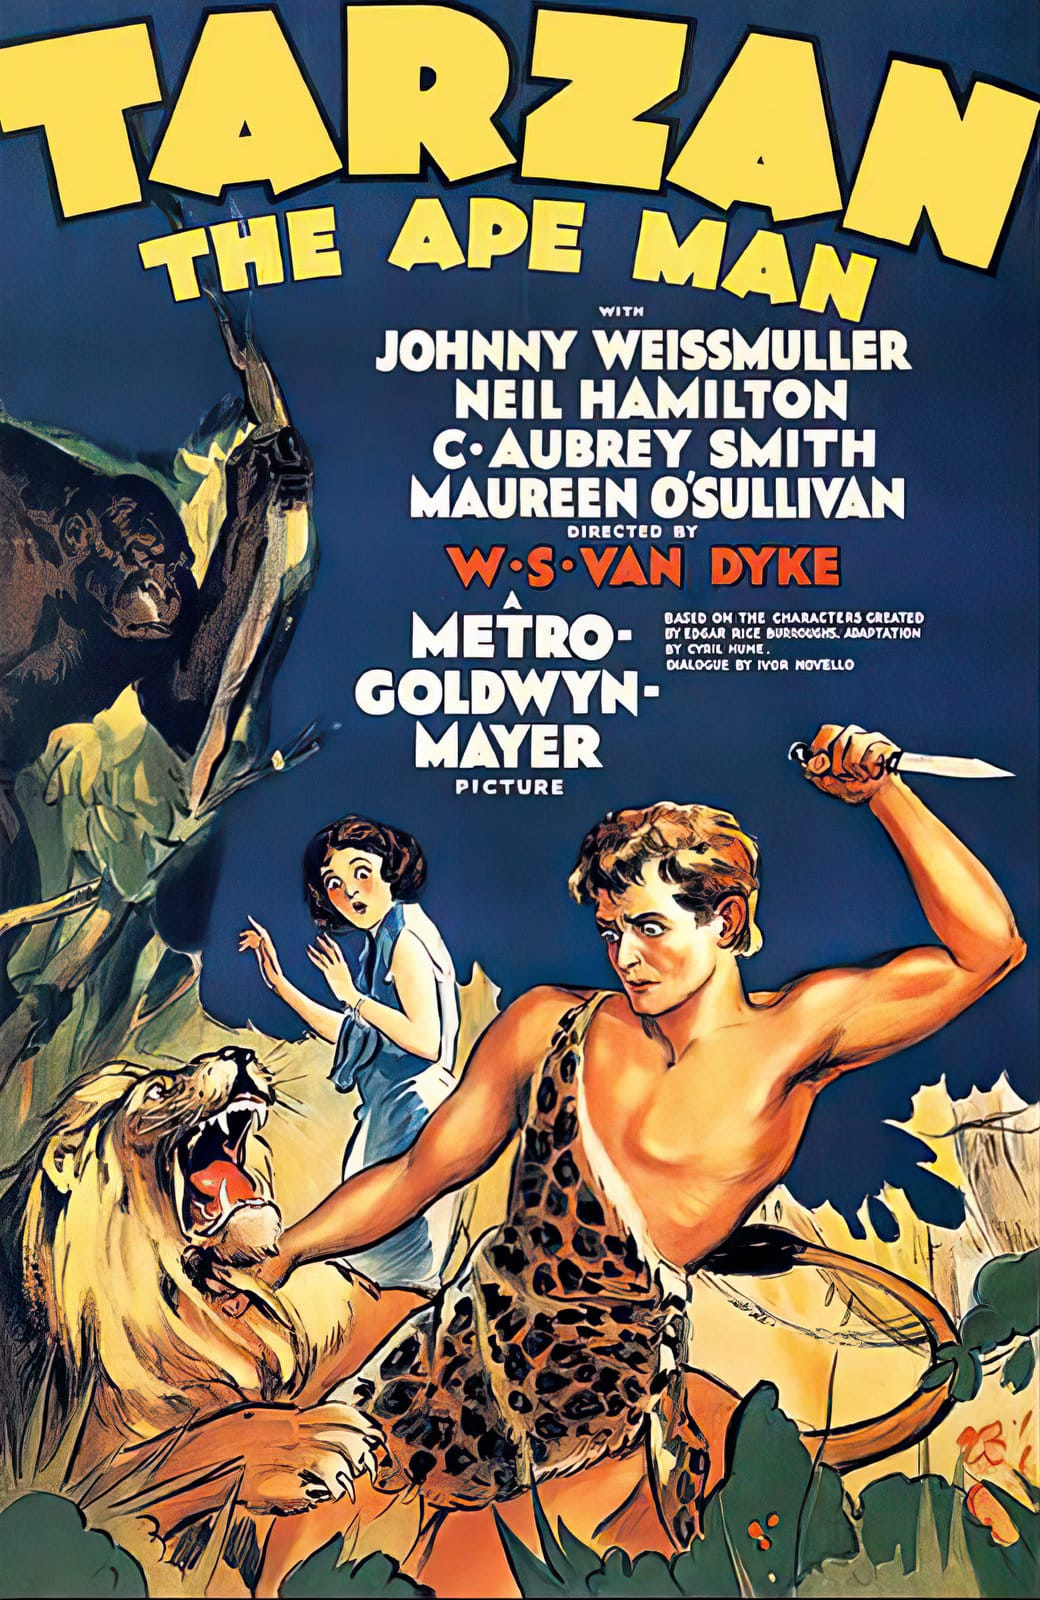 Tarzan the Ape Man classic movie with Johnny Johnny Weissmuller (1932)